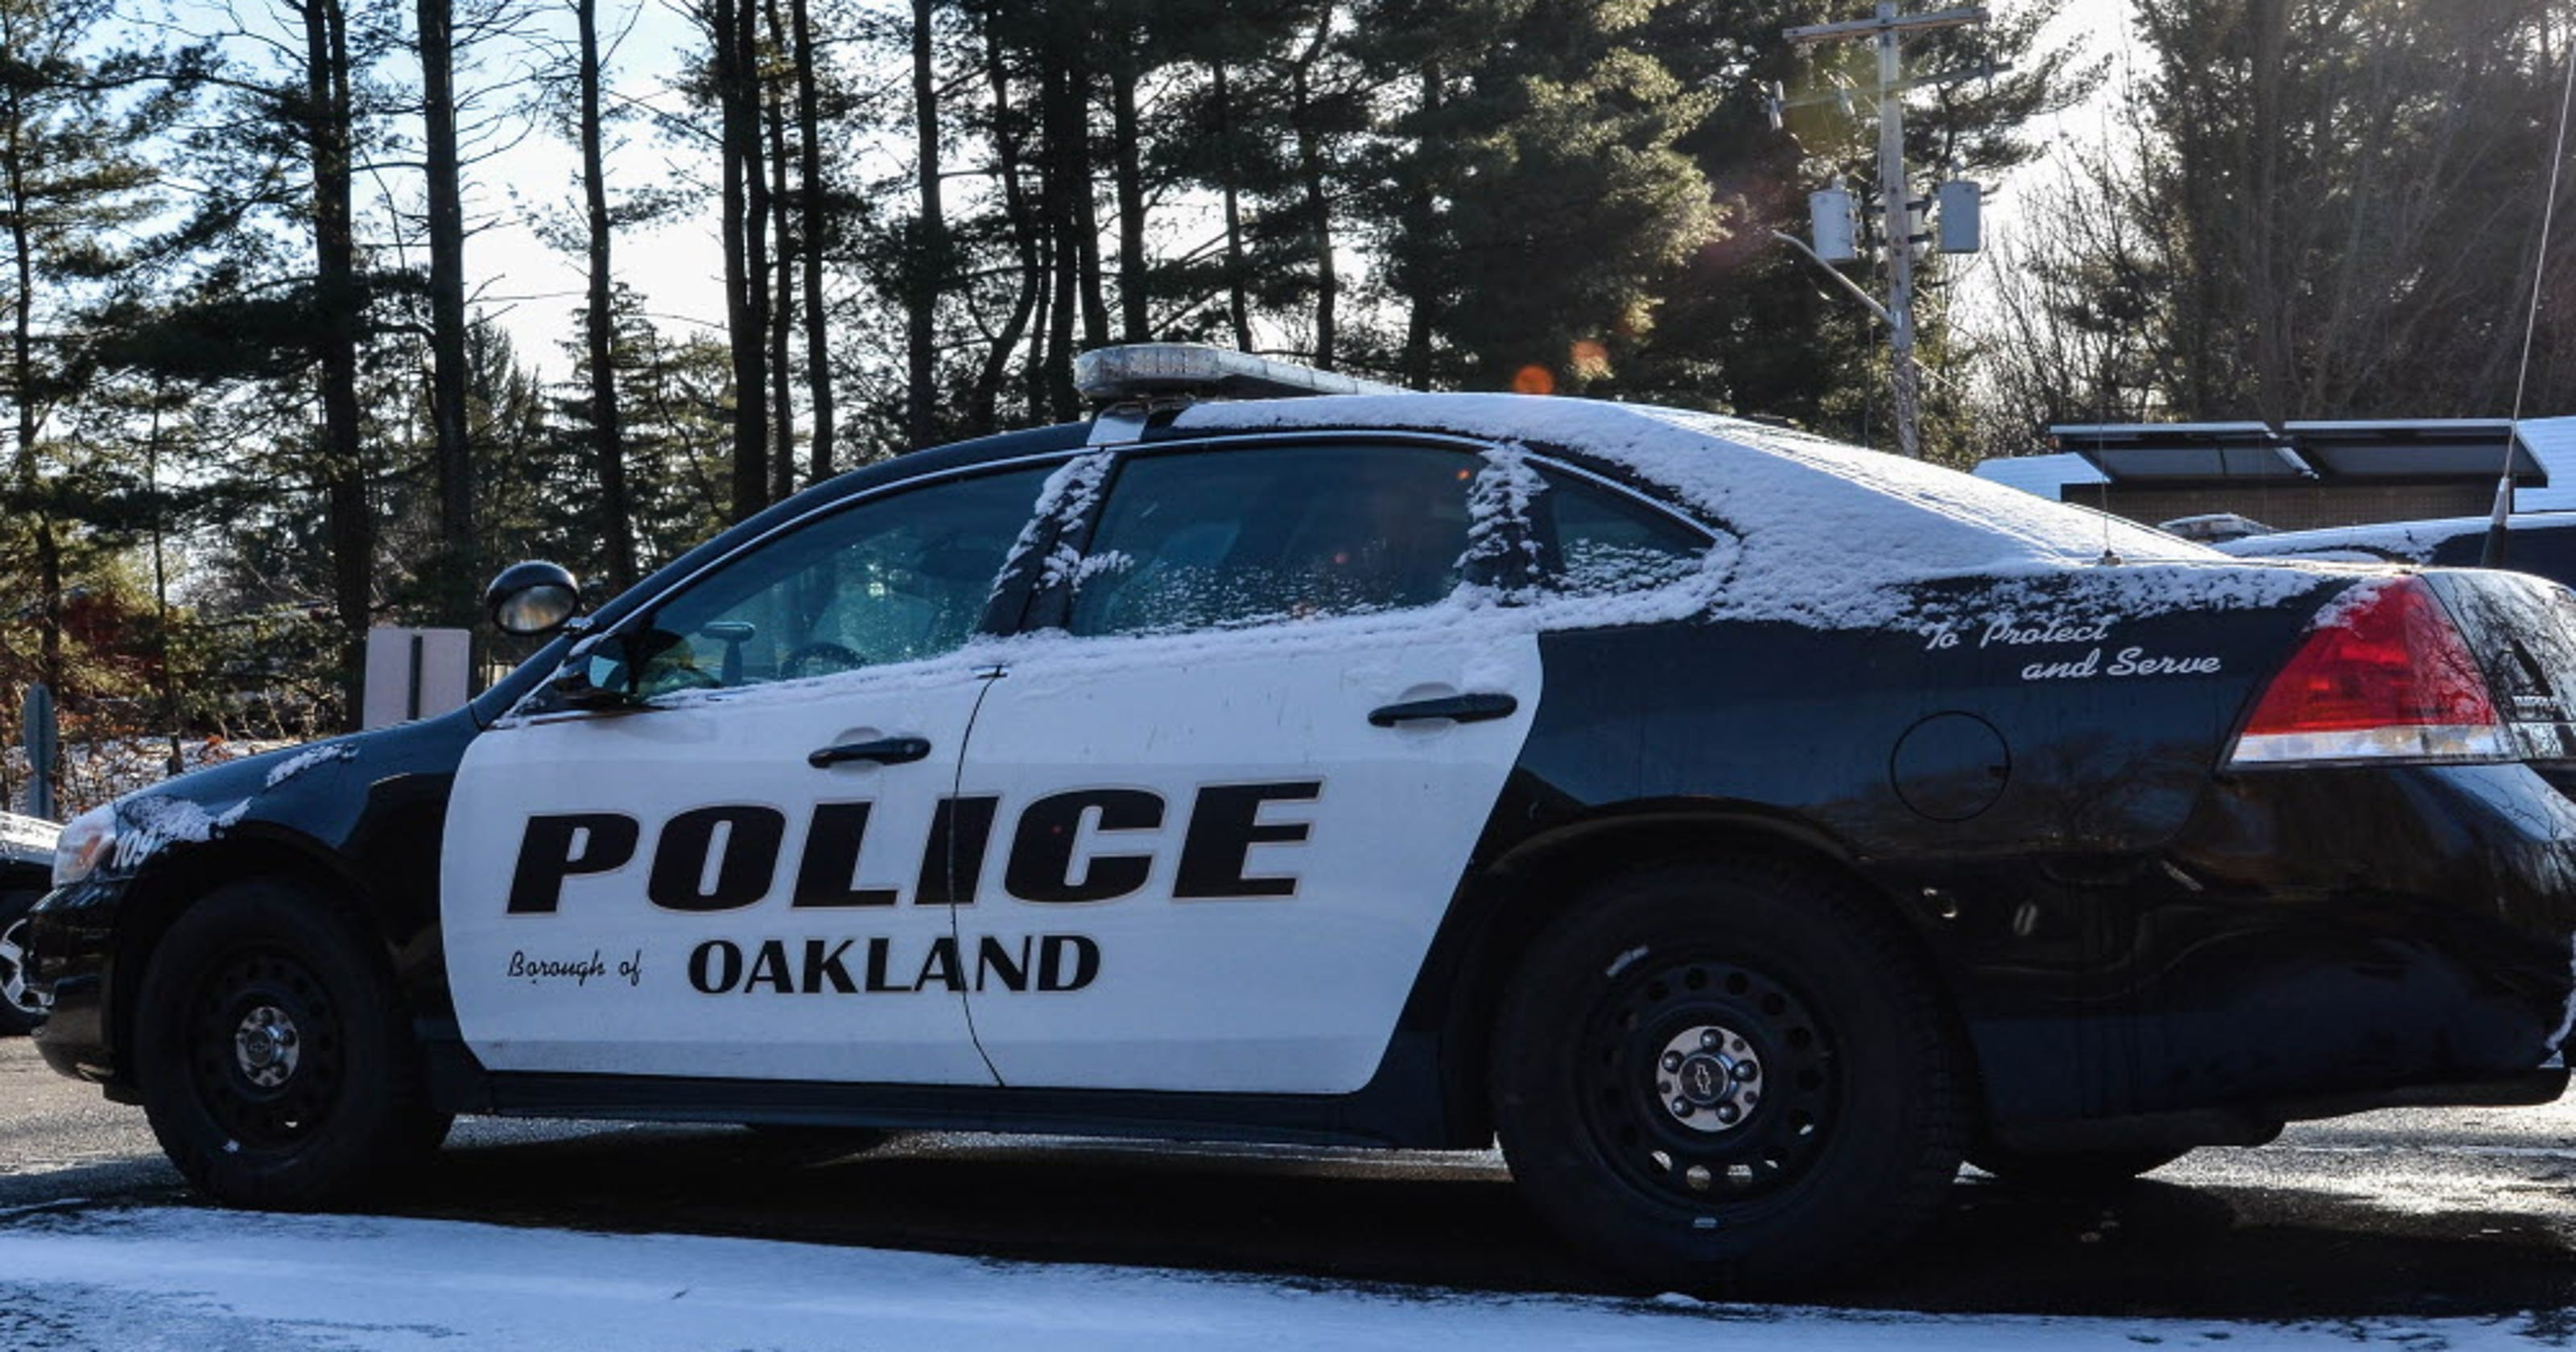 Oakland police seek driver from high-speed chase